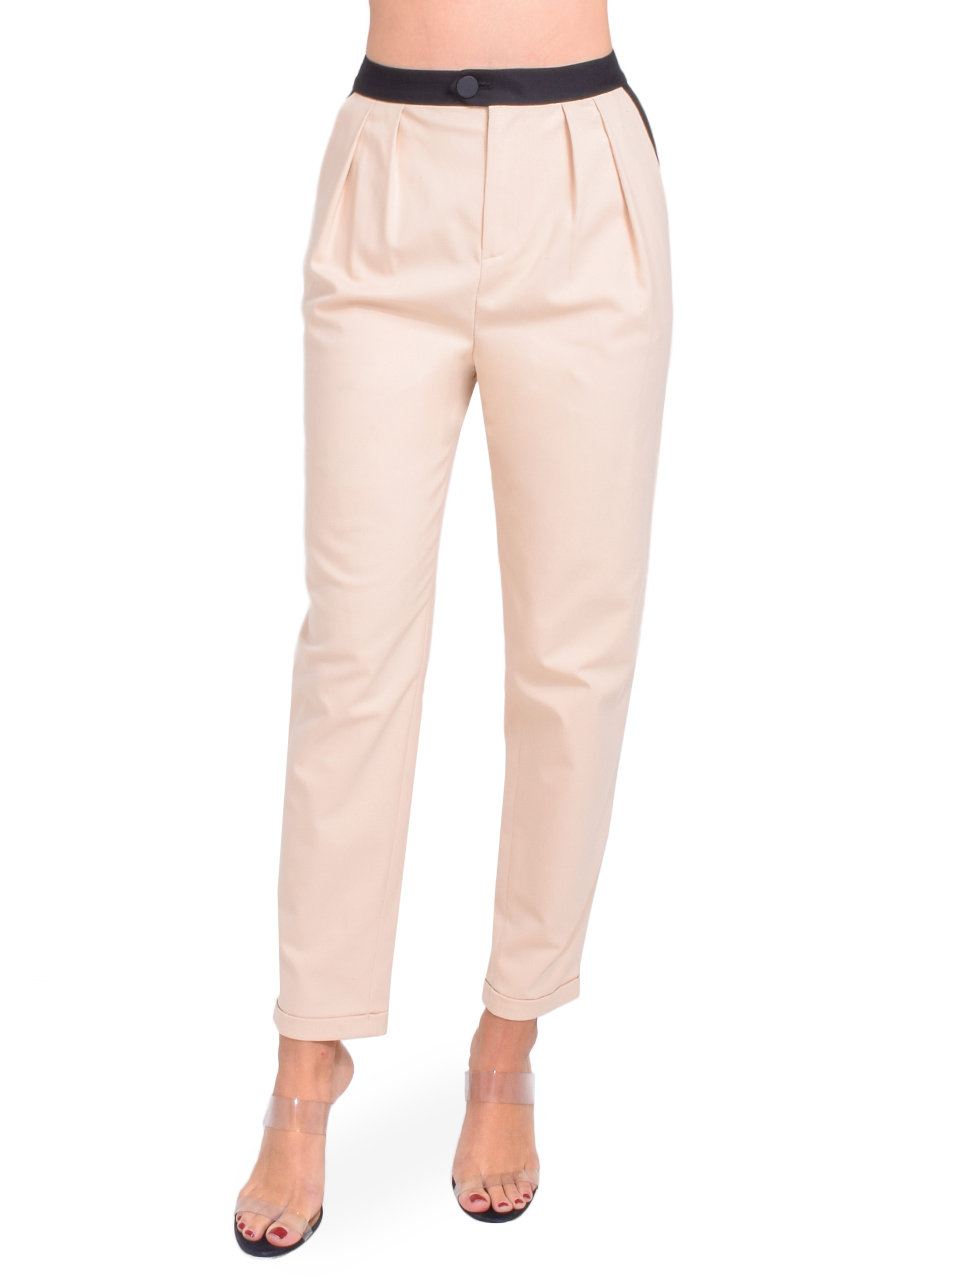 Alice + Olivia Roy Front Pleat Pant in Sepia Front View  X1https://cdn11.bigcommerce.com/s-3wu6n/products/33394/images/110404/125__68572.1600302835.244.365.jpg?c=2X2